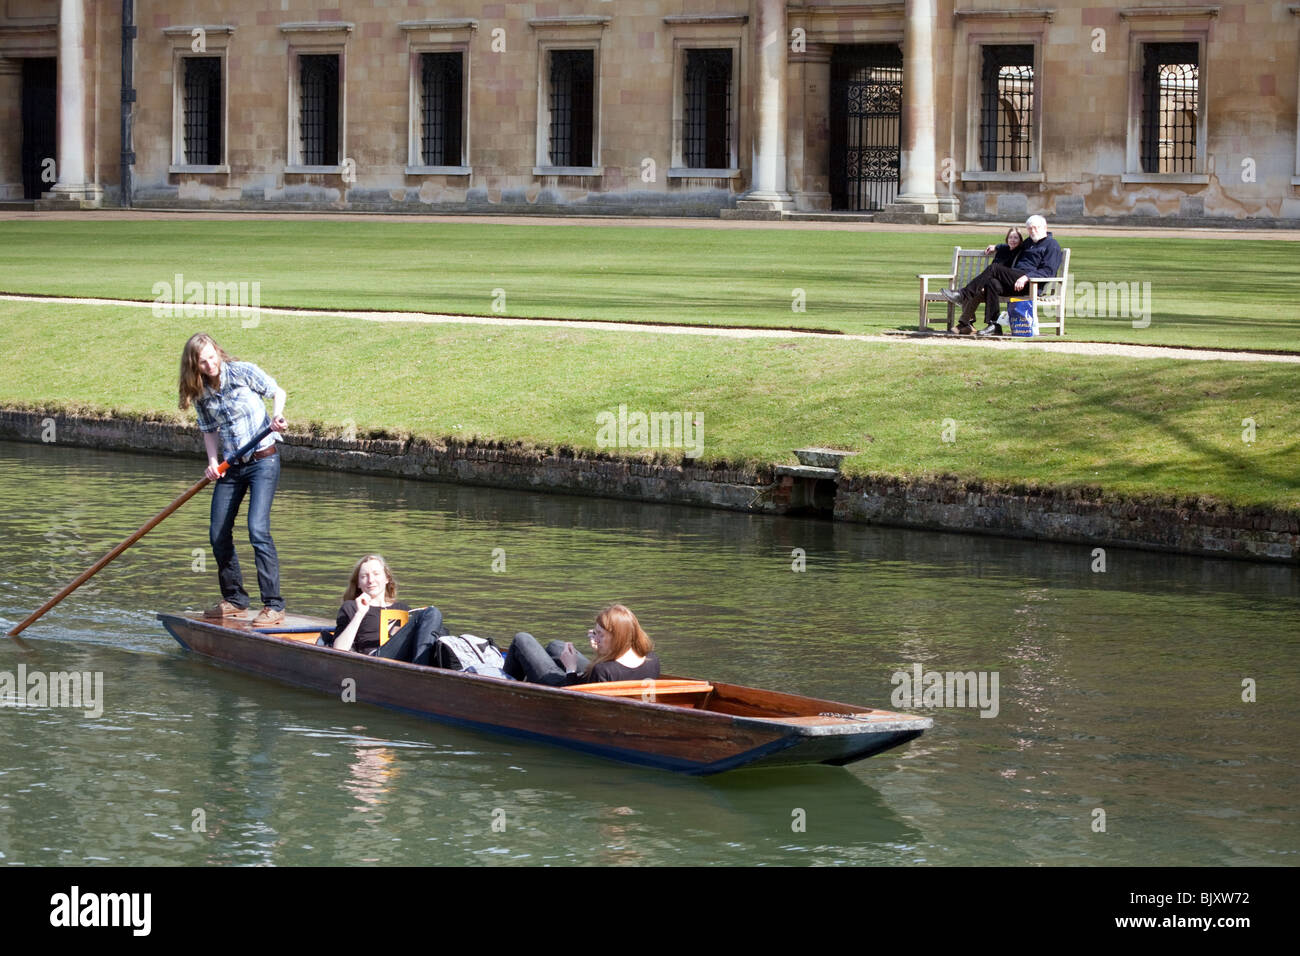 Punting on the River Cam past Nevile's Court, Trinity College in the background, Cambridge, UK - Stock Image